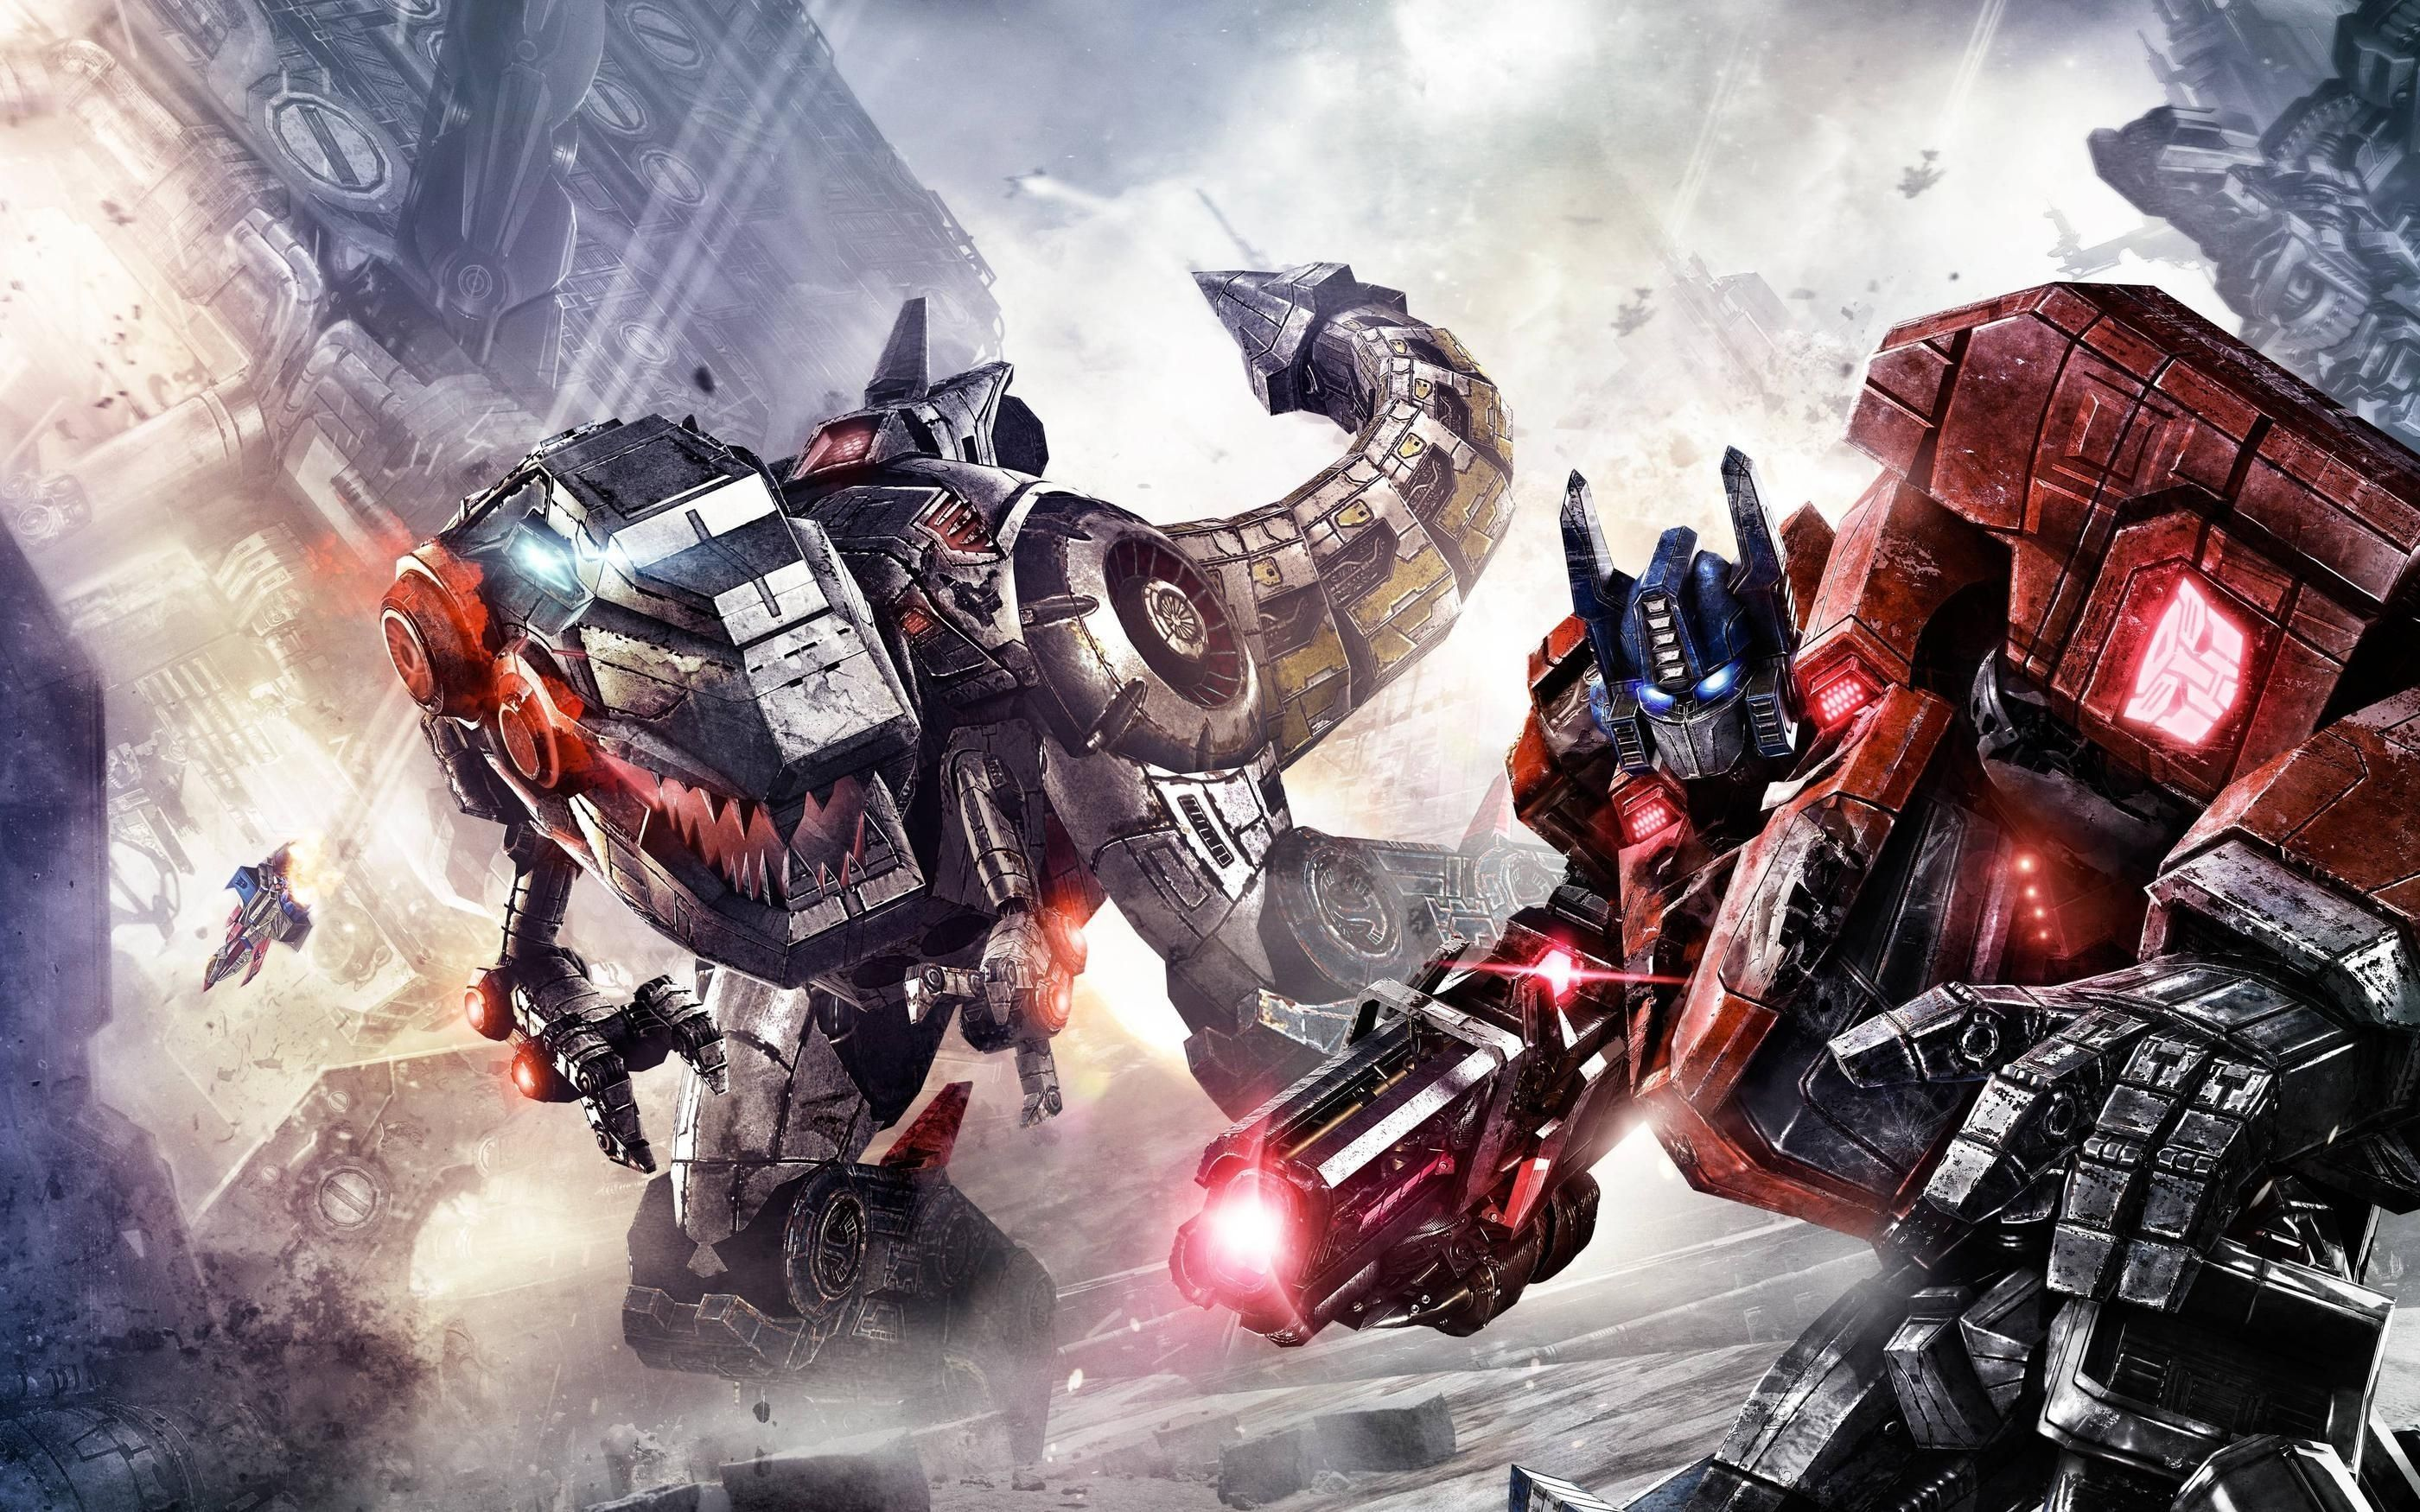 hd wallpapers of transformers